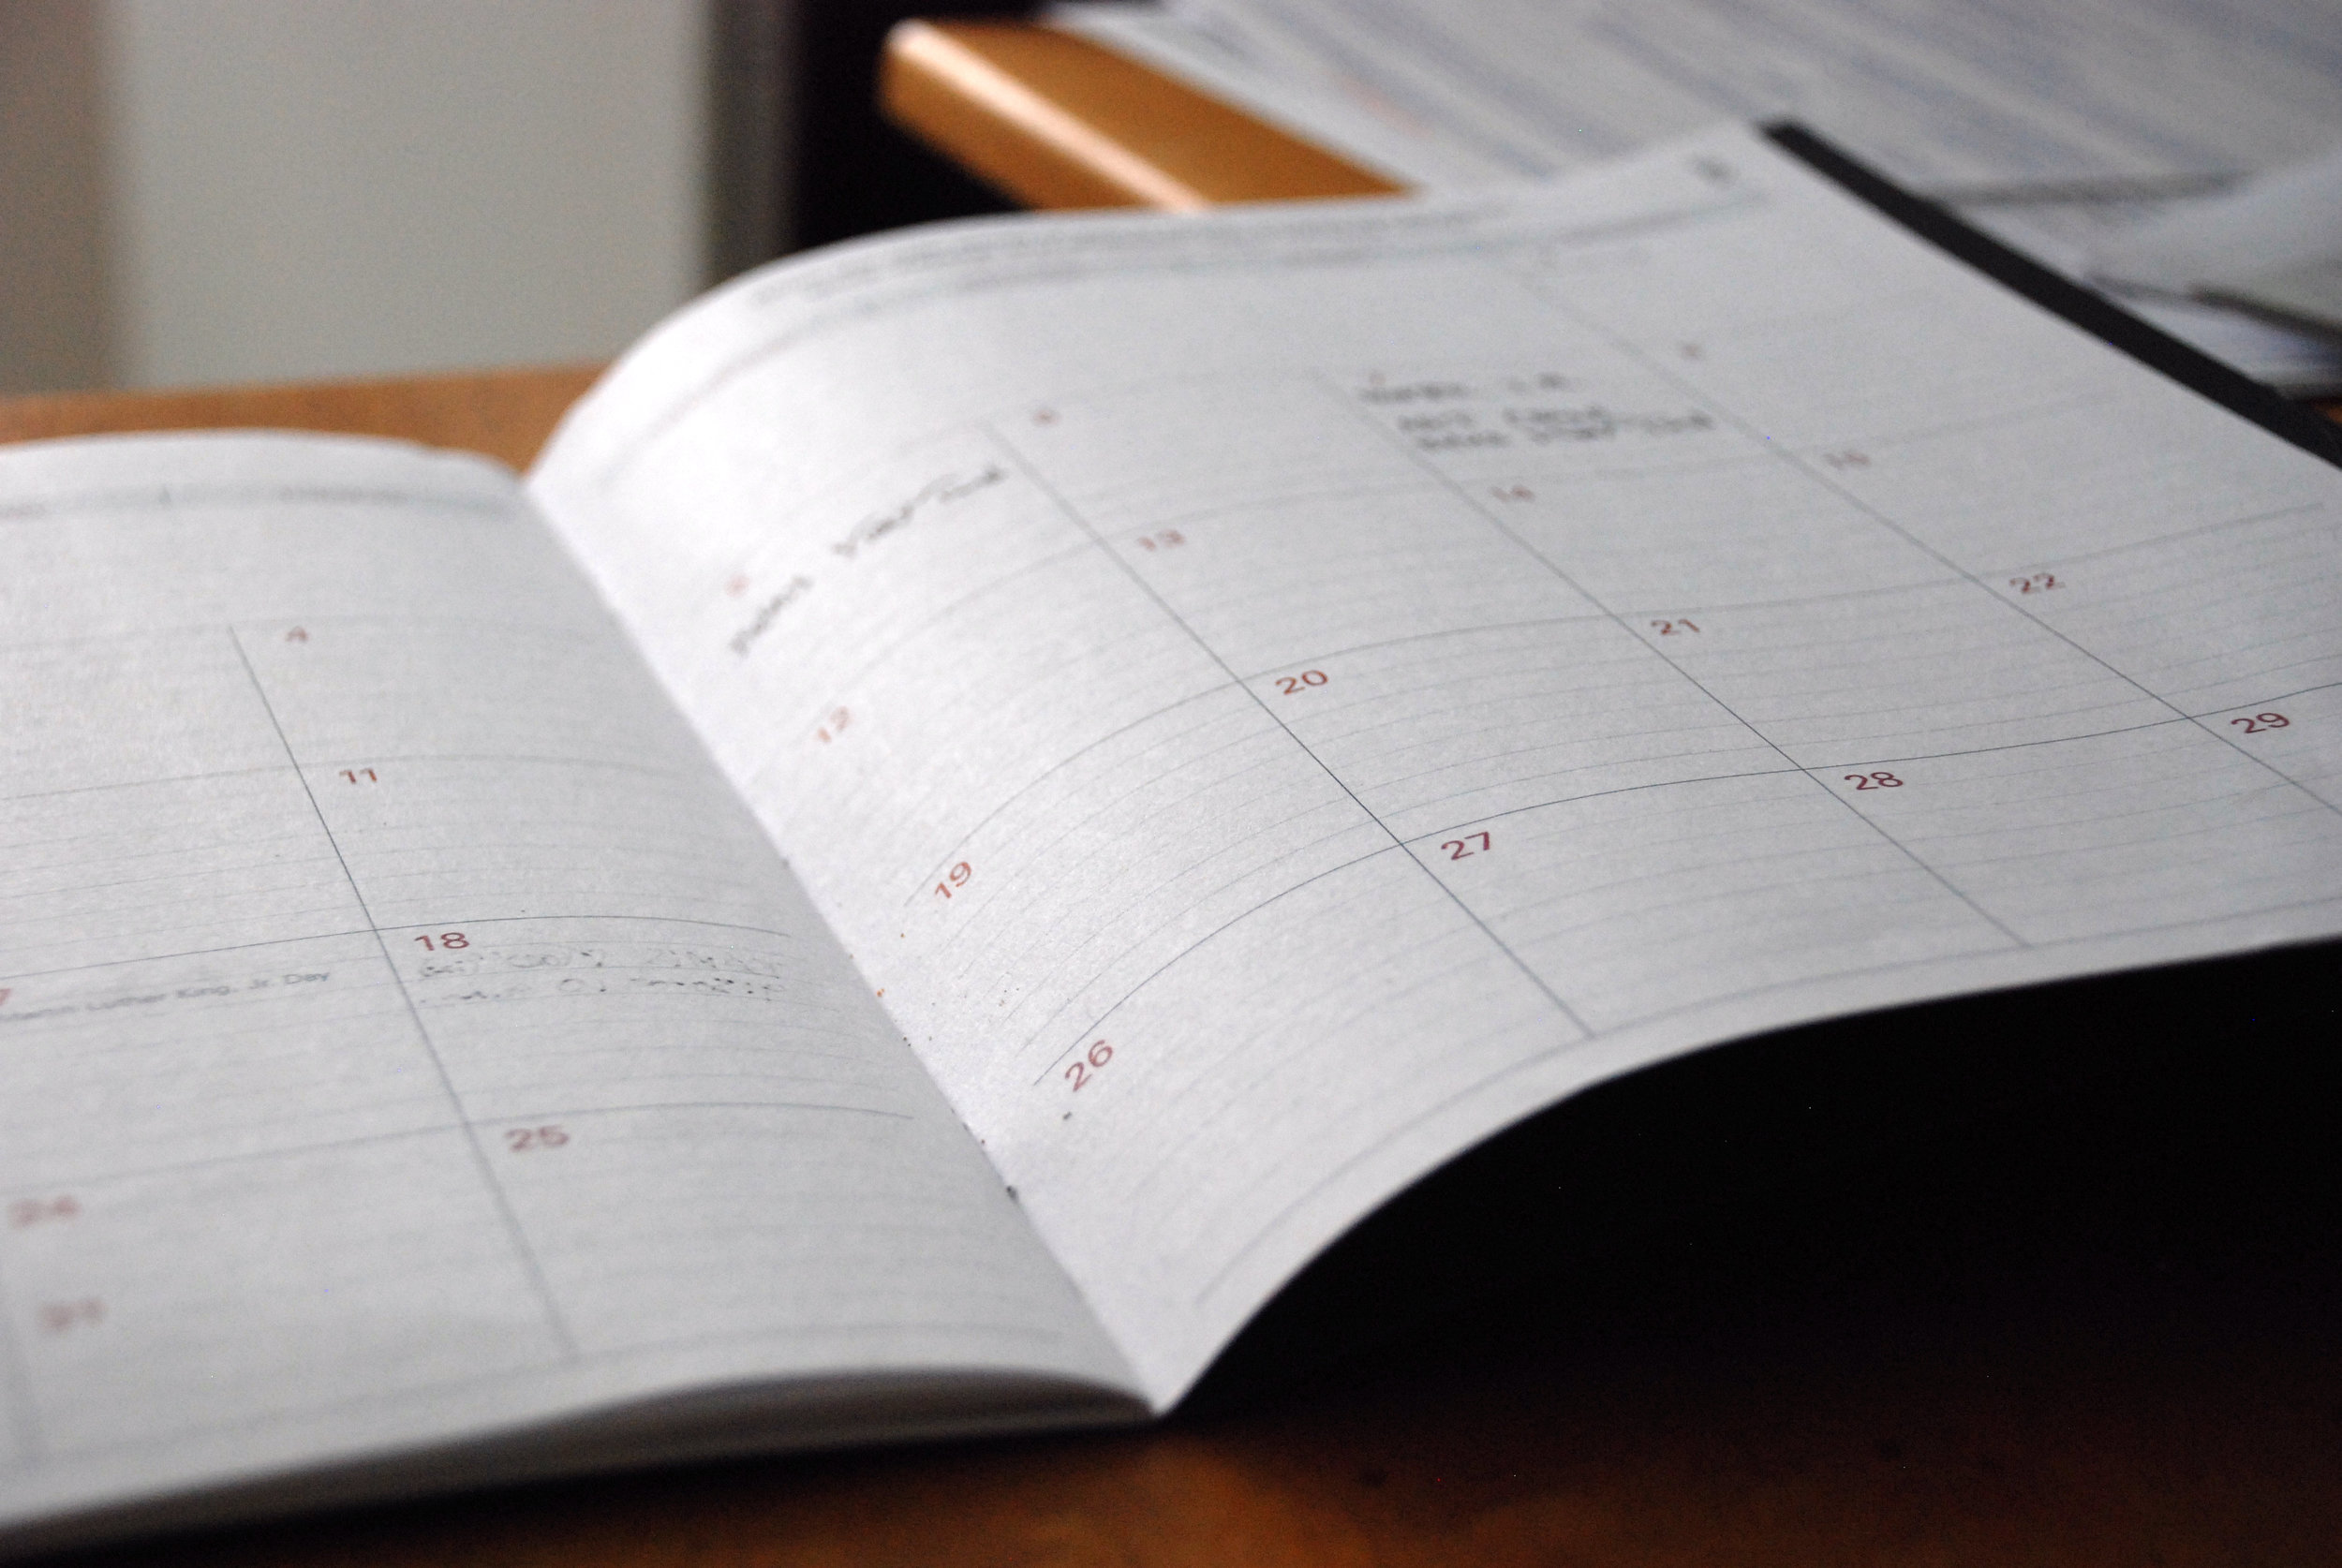 Upcoming events - Check out the calendar to see what's going on in the church each month.